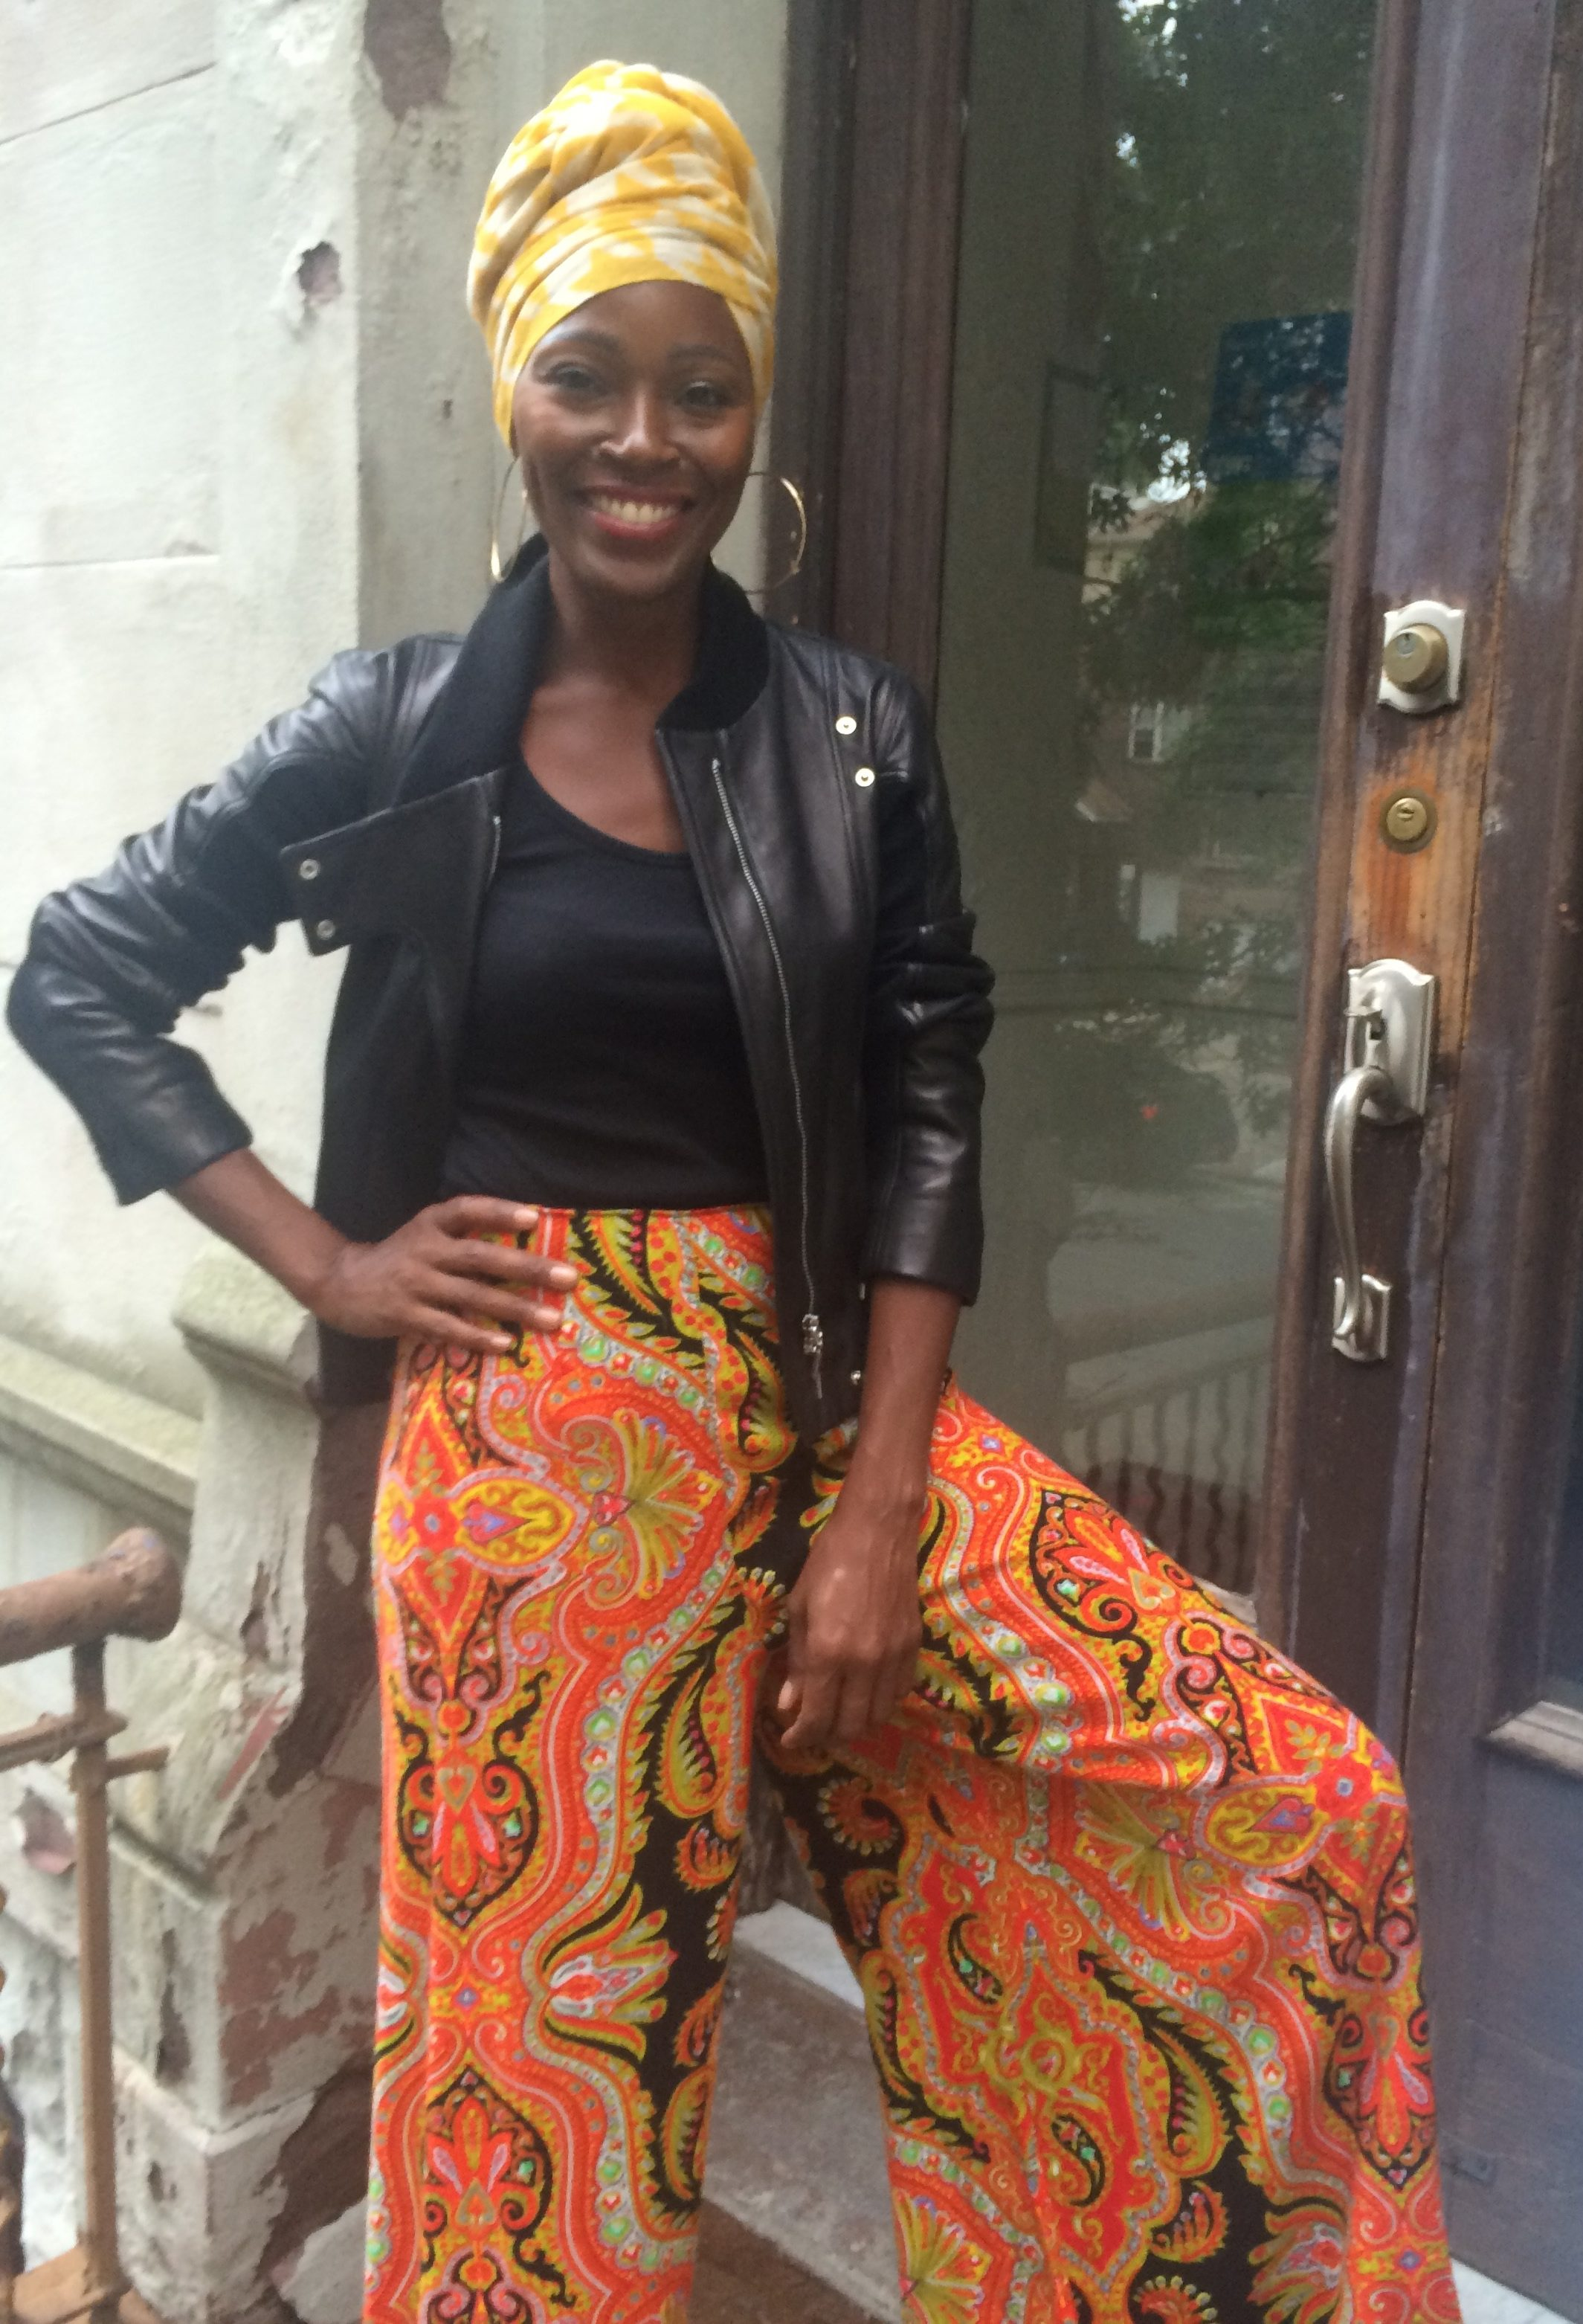 Sheryl Roberts poses in a Indigo Style Vintage ensemble in front of her Greene Ave house. Black leather jacket over a black shirt on top of loose orange patterned trouser skirt